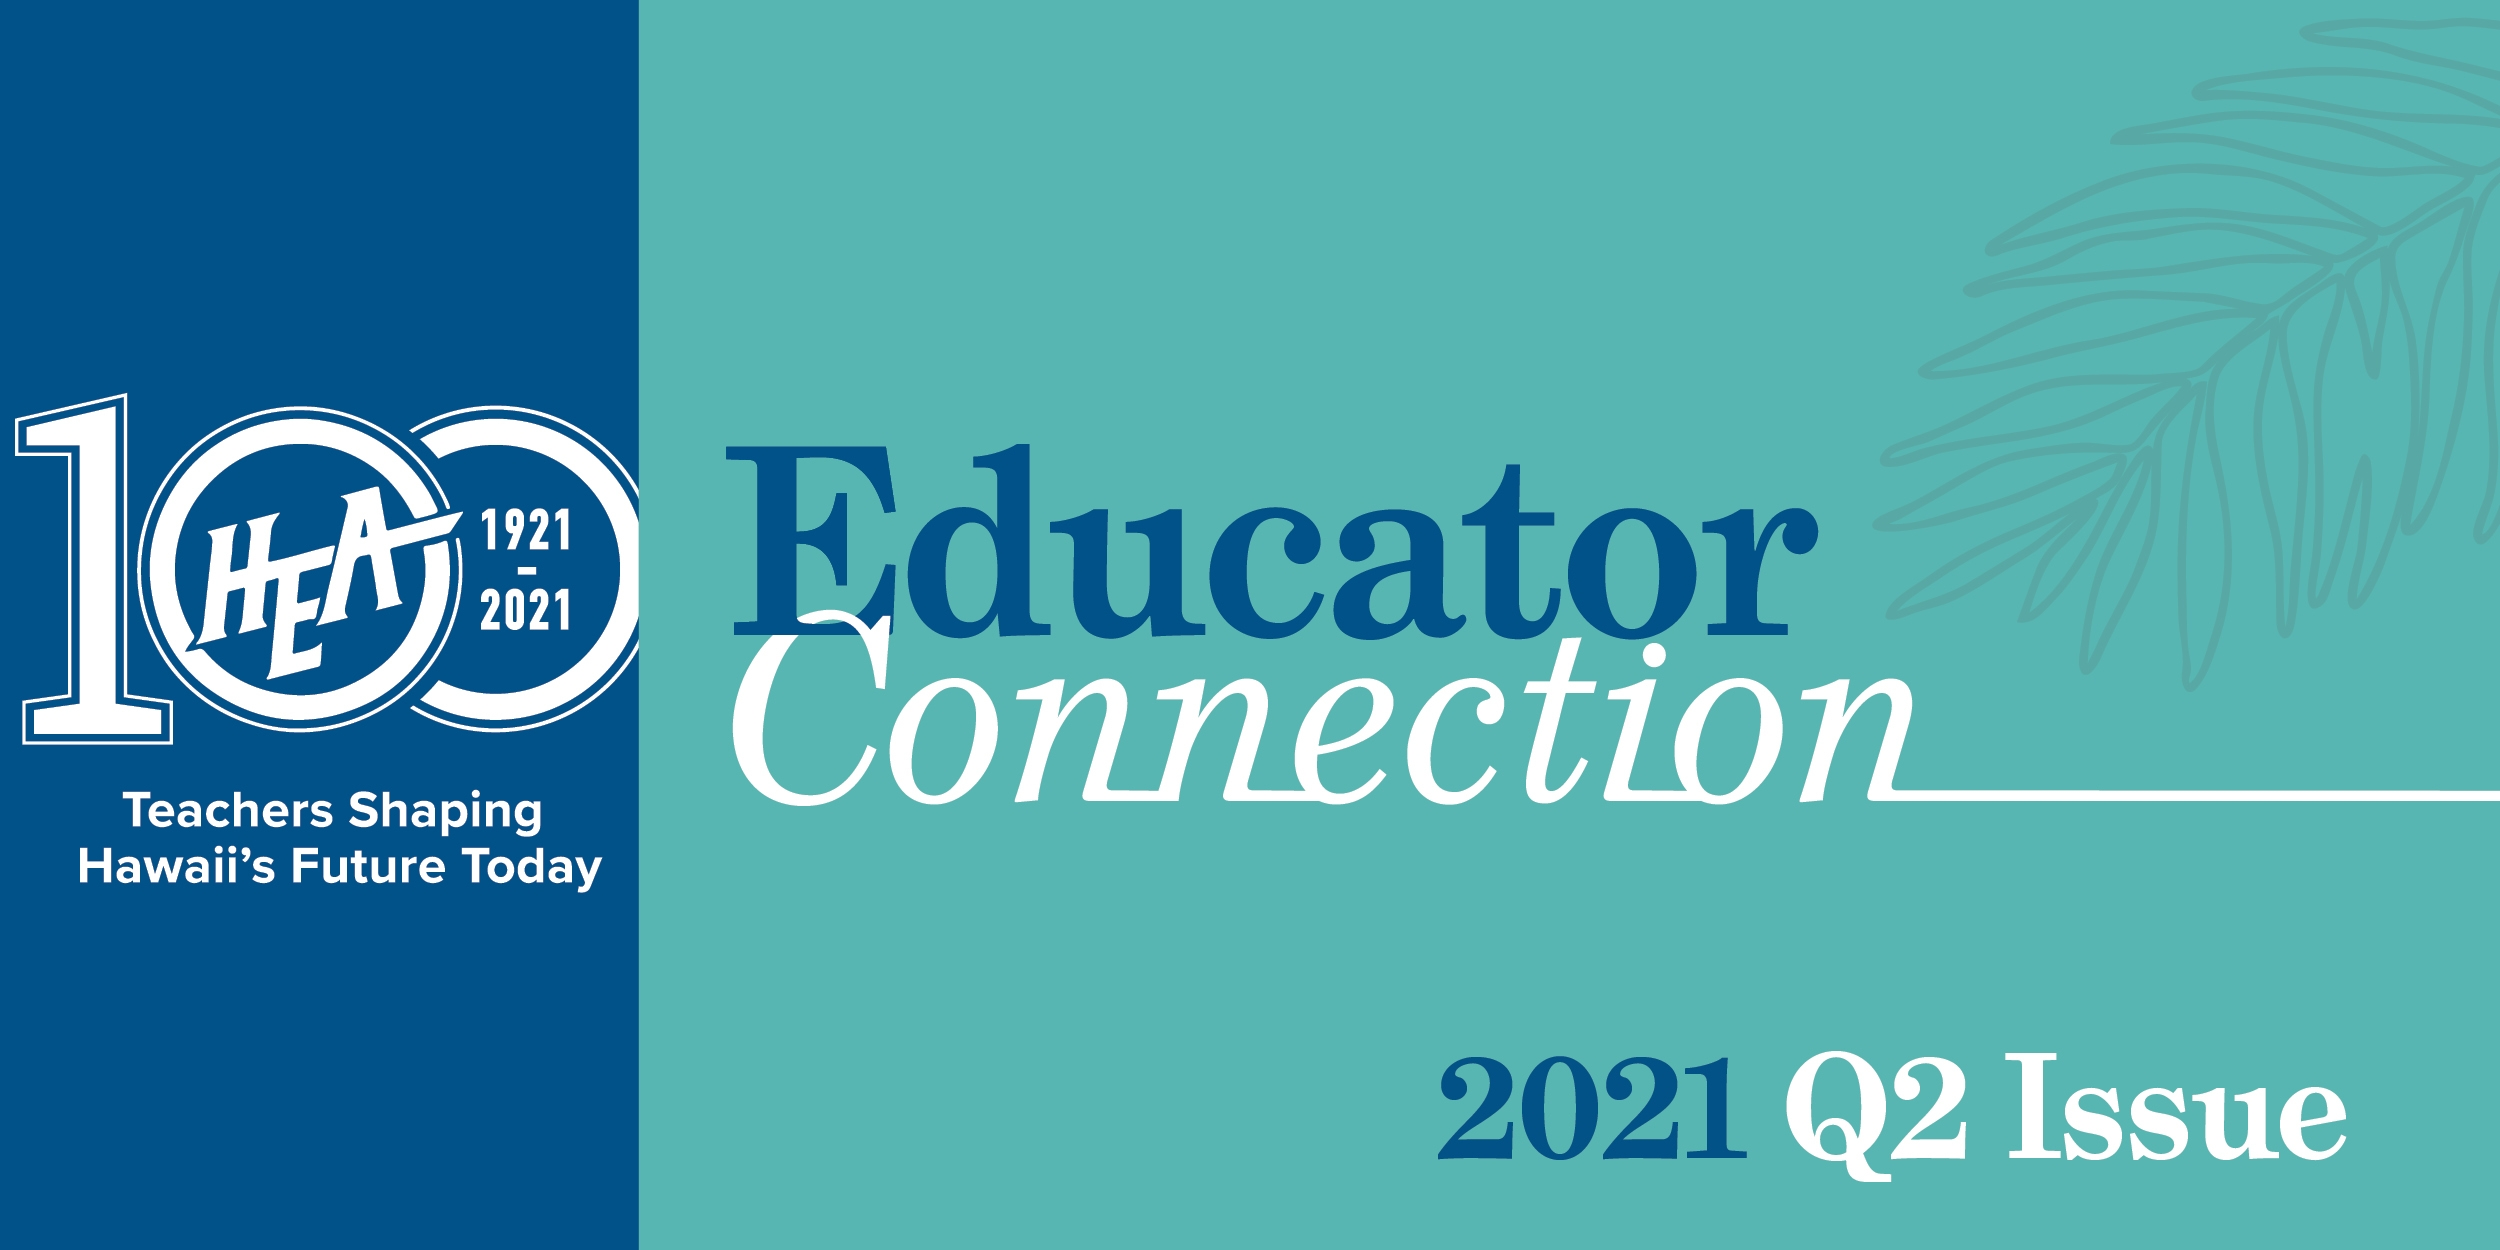 Educator Connection Q2 2021 Newsletter Now Available